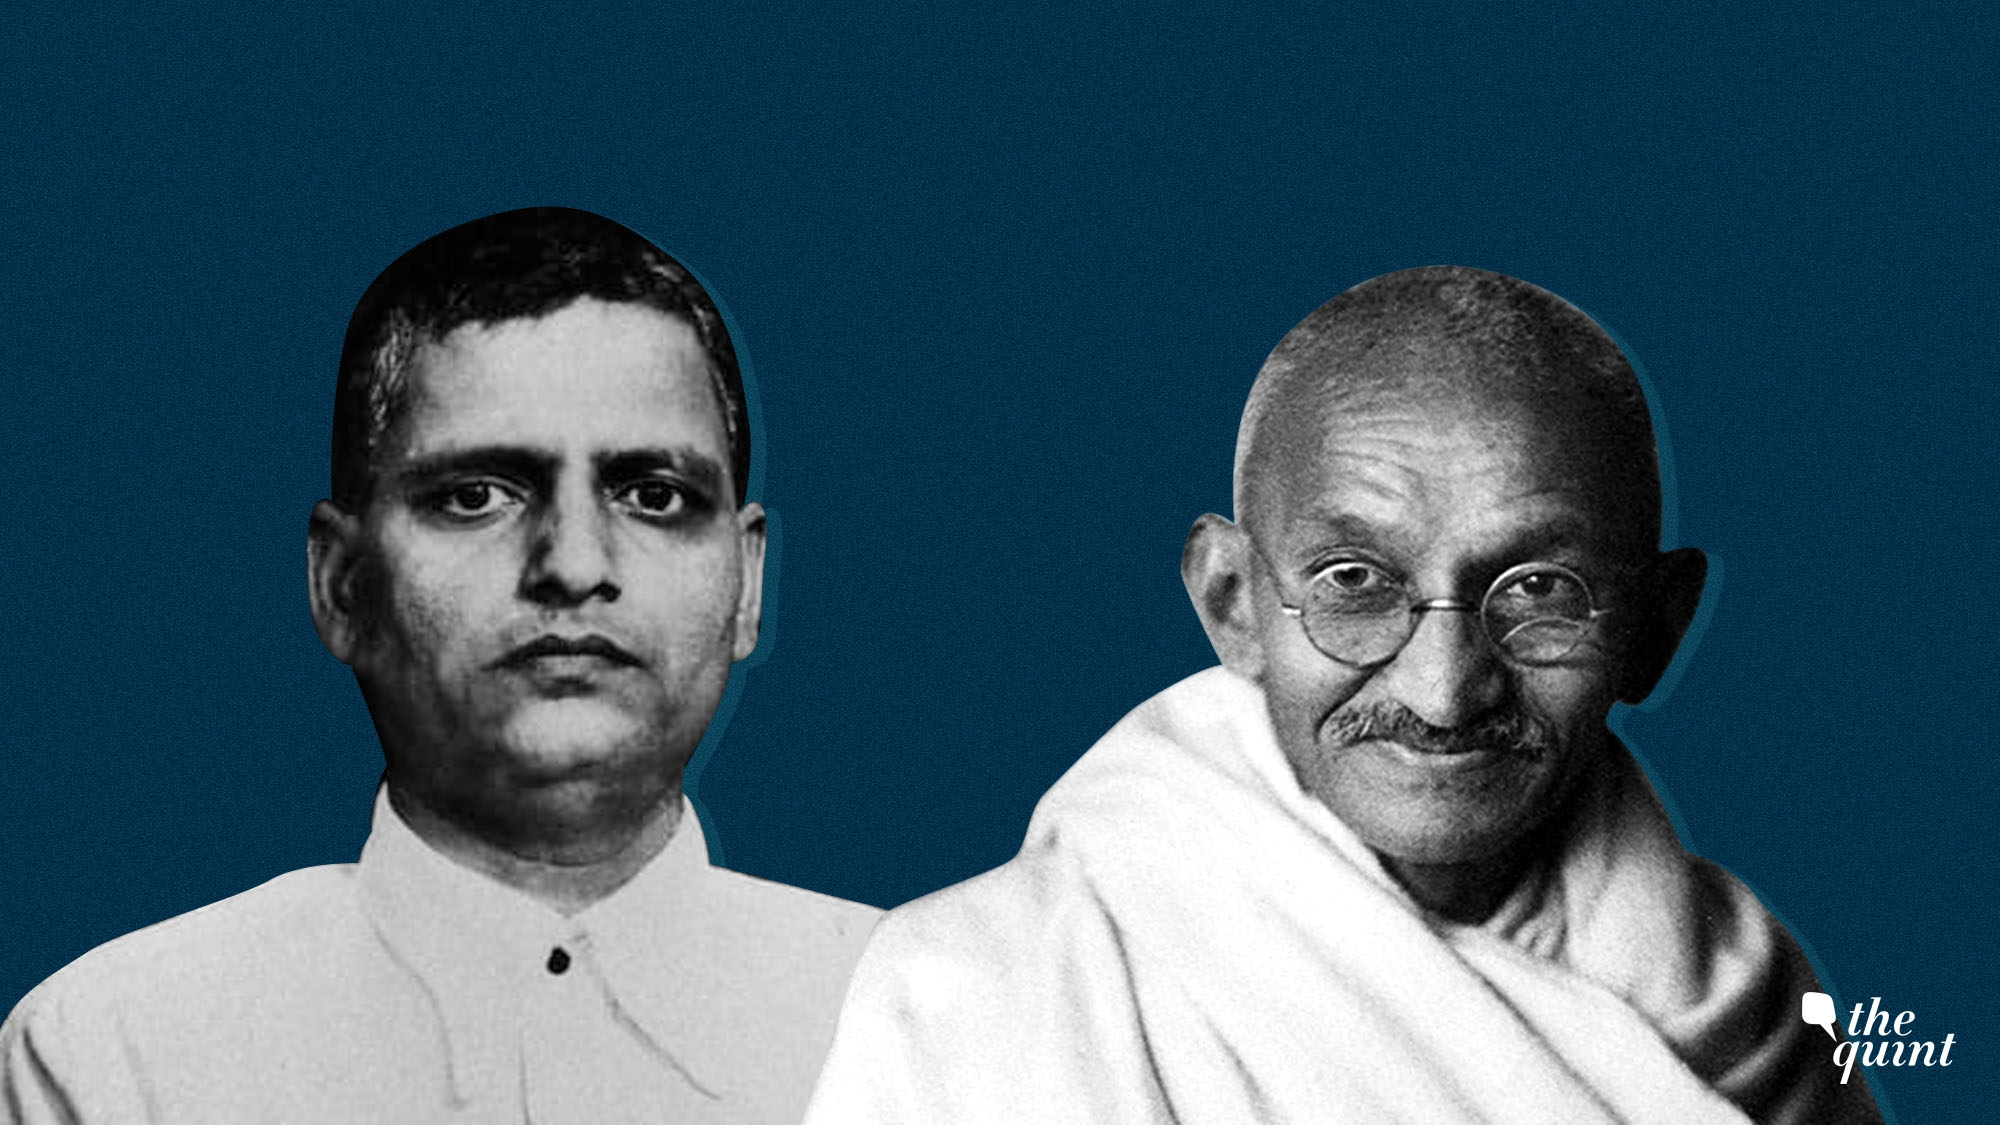 Godse's Killing of Gandhi Is Not Just Terrorism – It's Much Worse